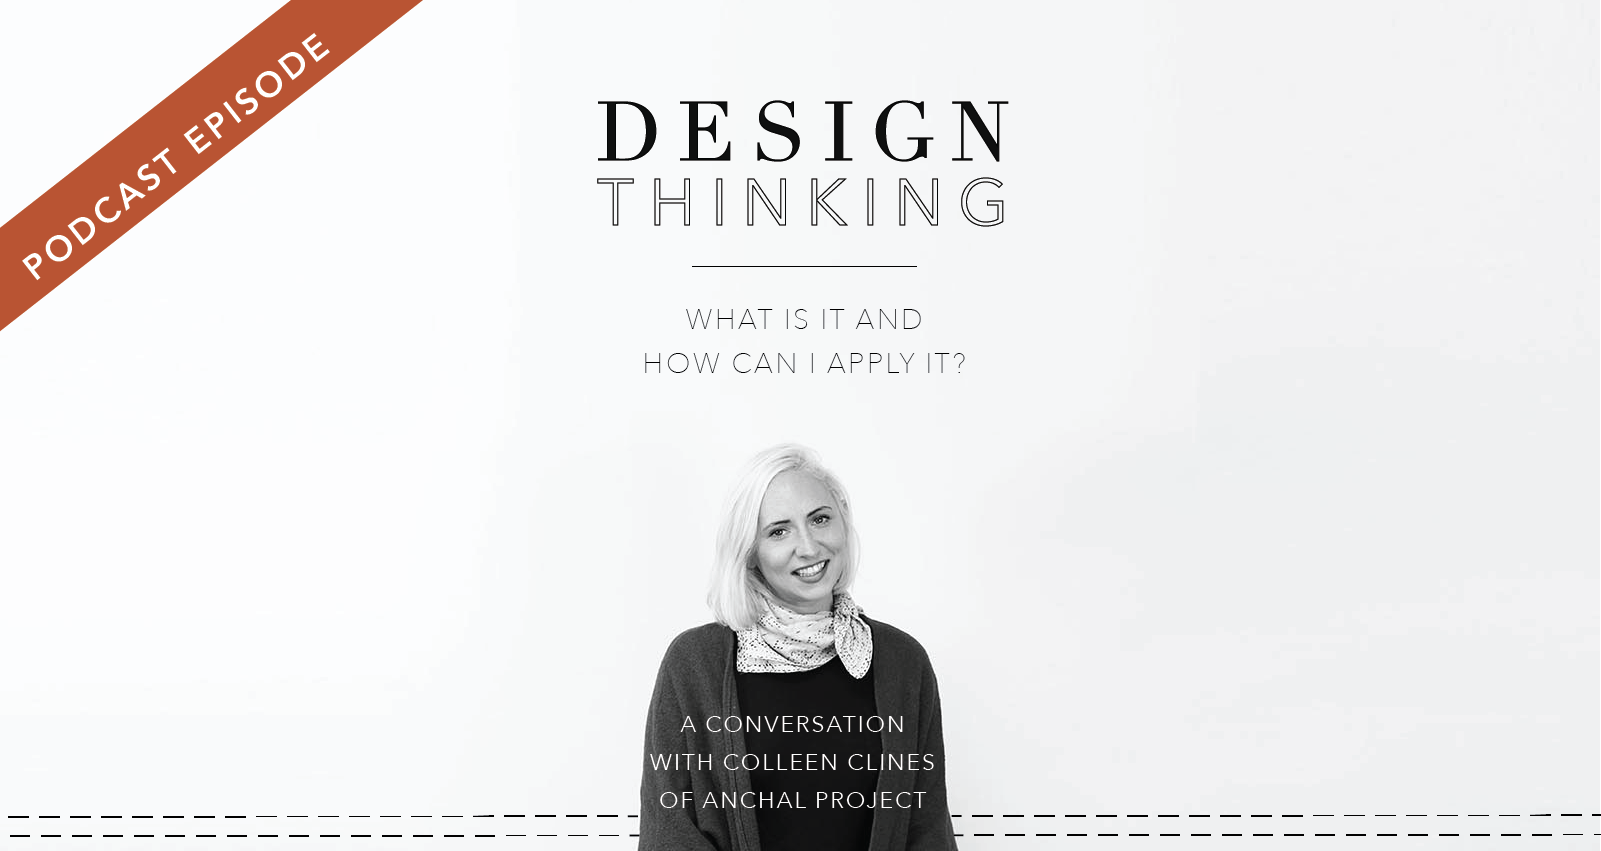 Design For Development How To Apply Design Thinking To Your Social Good Business With Colleen Clines Of Anchal Project Episode 55 Rank File Magazine